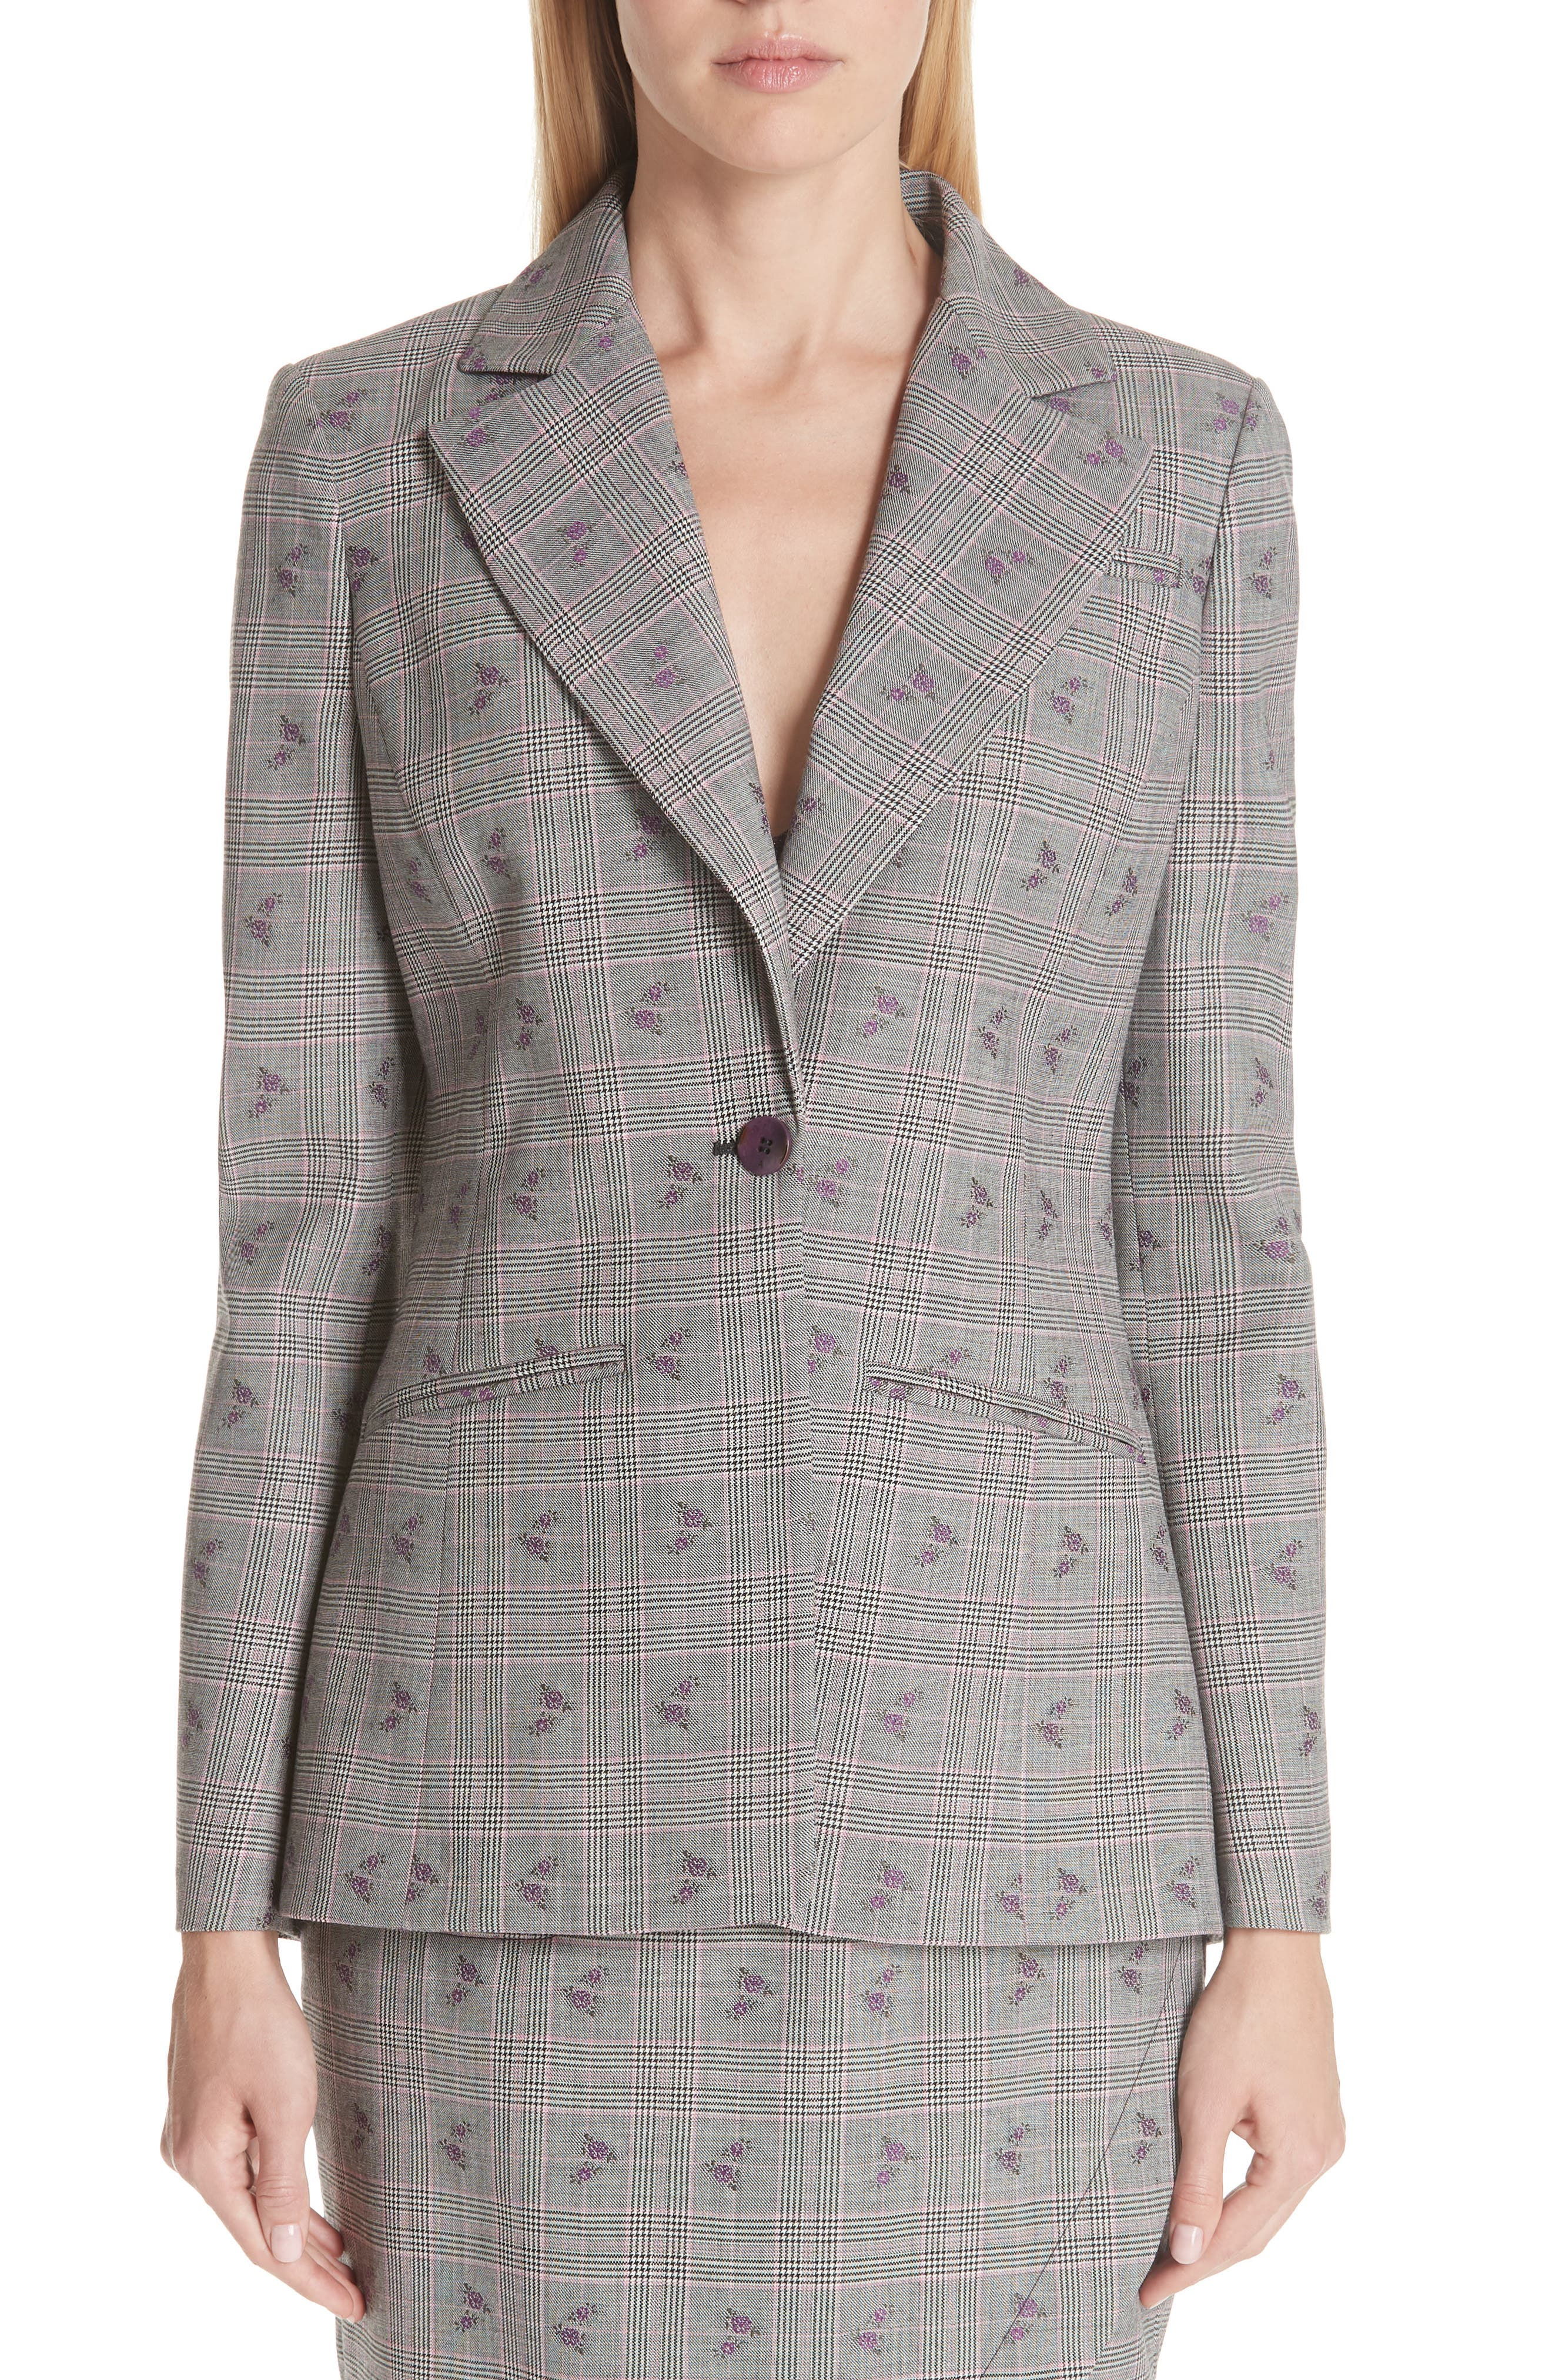 ALTUZARRA,                             Floral Plaid Jacket,                             Alternate thumbnail 4, color,                             001